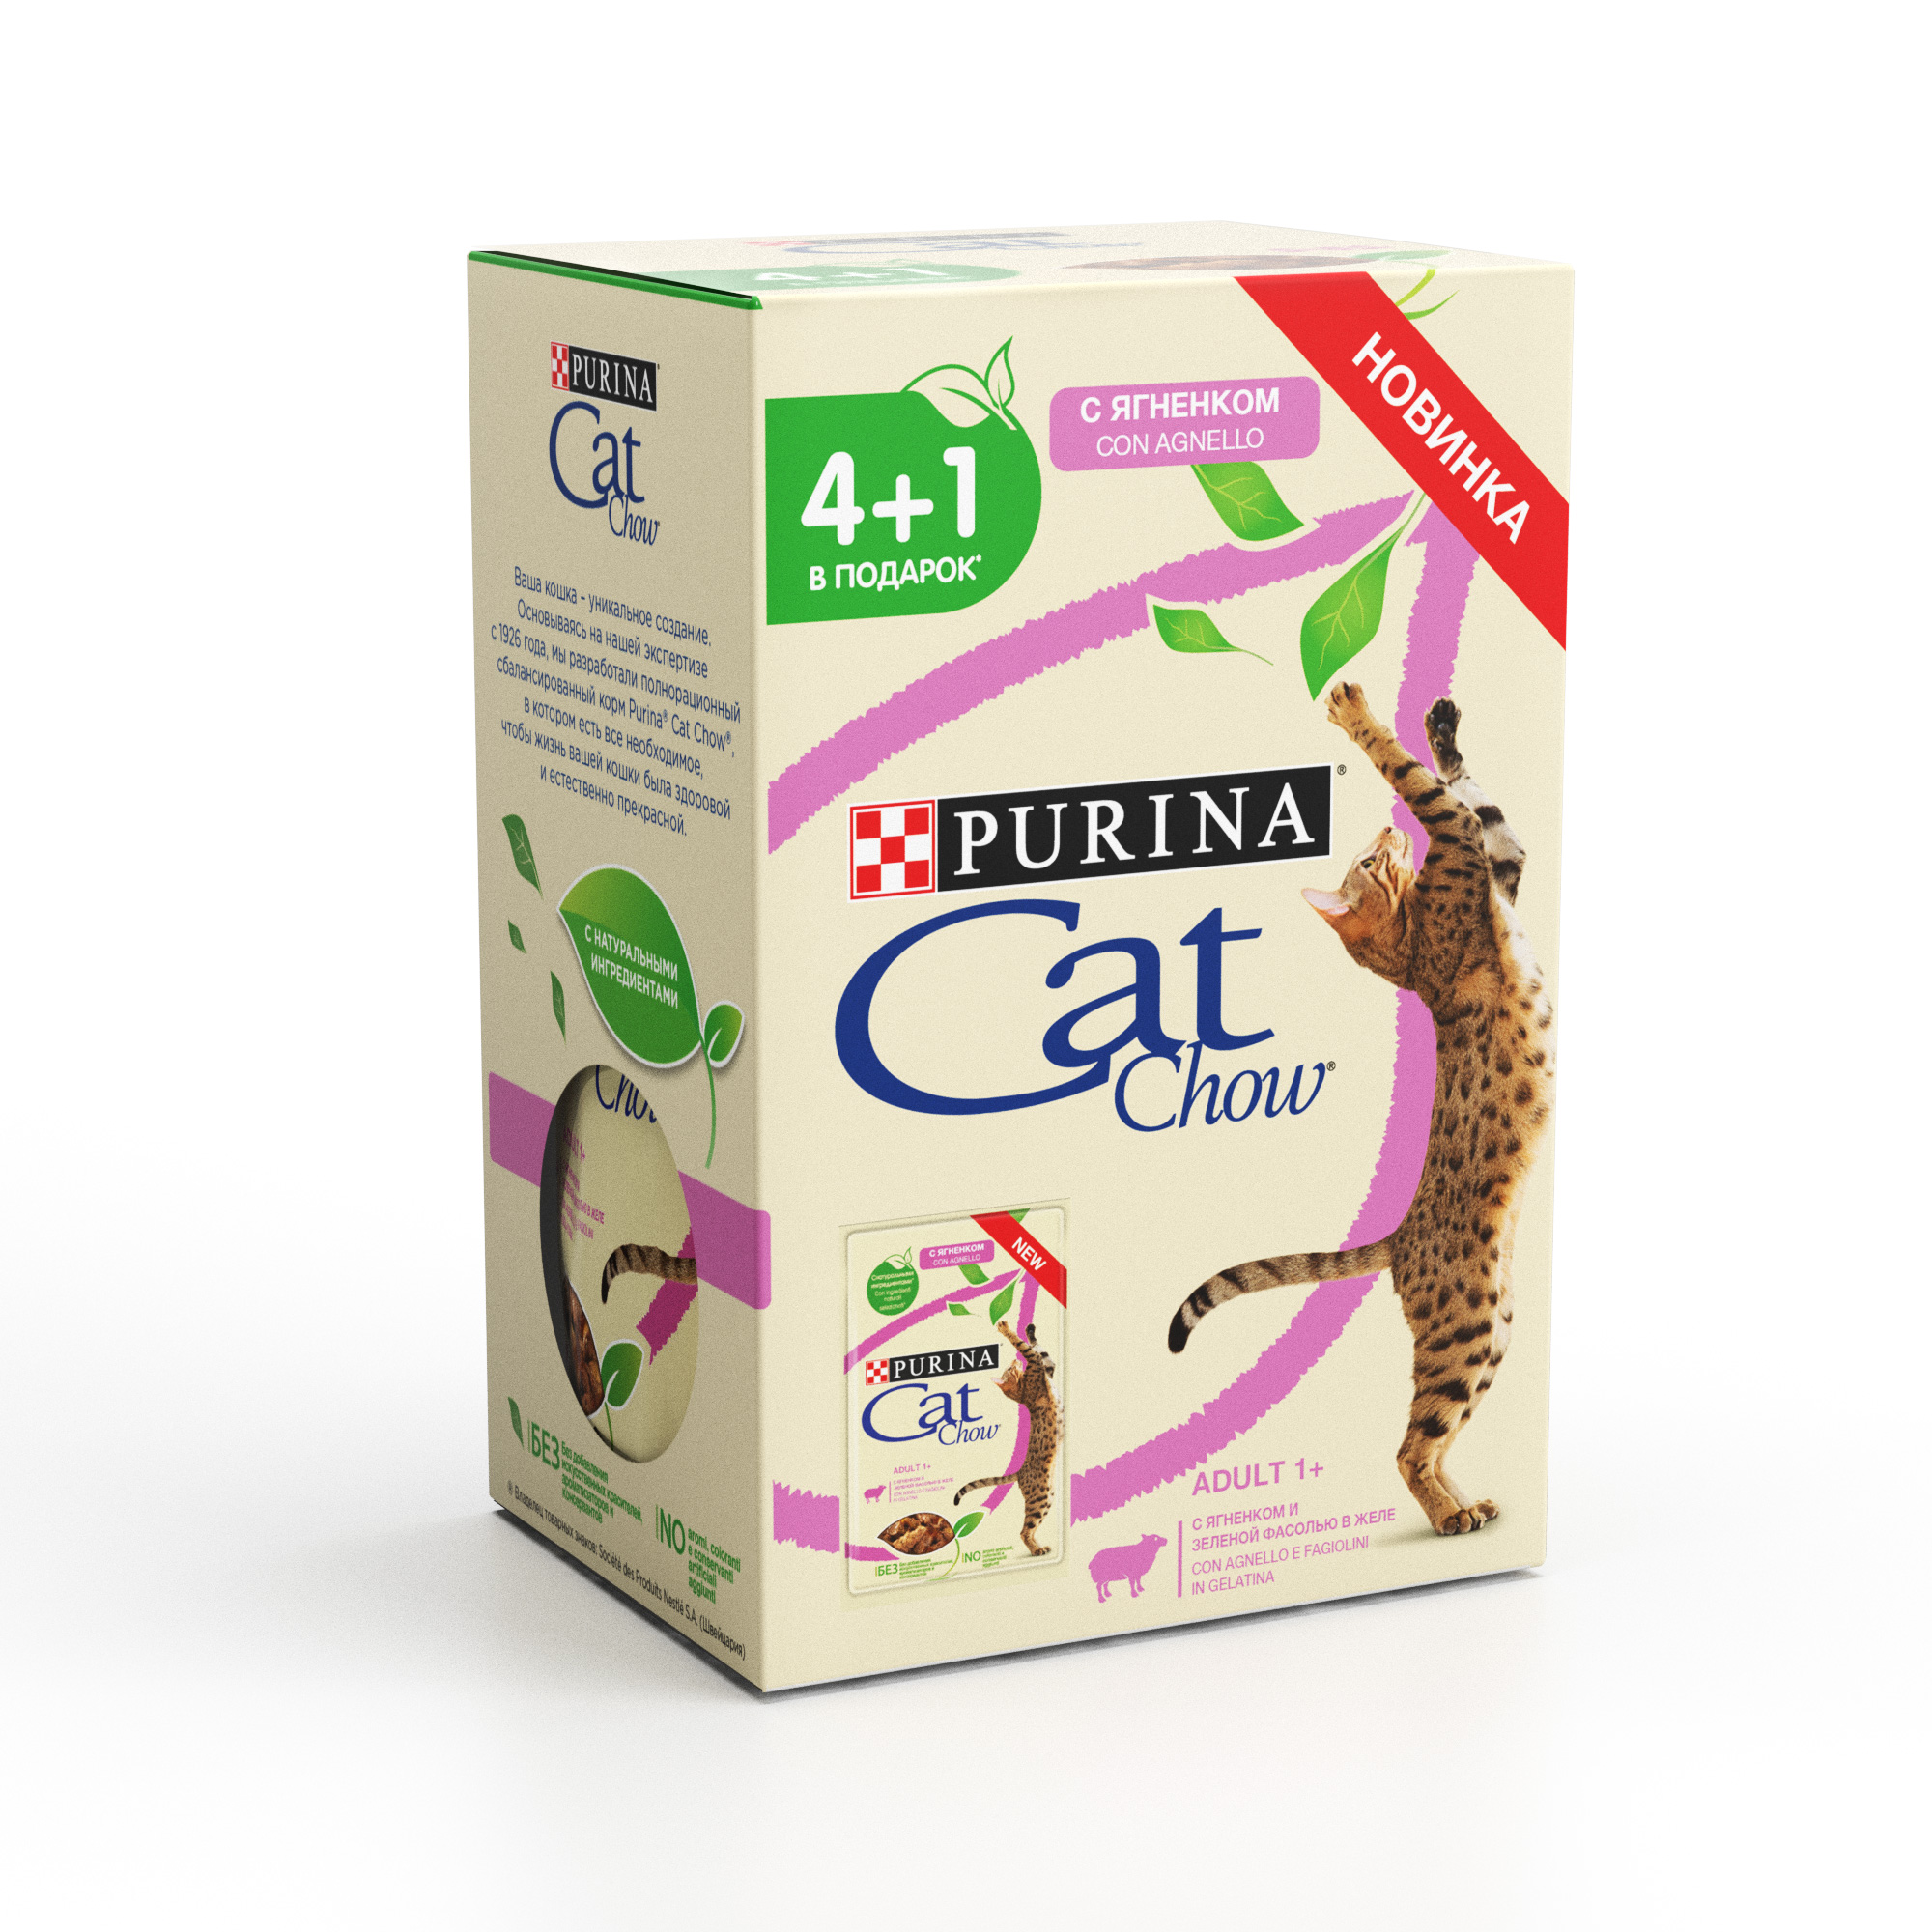 Promopak set: Cat Chow Wet Feed for Adult Cats with Lamb and Green Beans, 60 pouch (12 x (4 + 1)) x 85 g wet pro plan feed for adult cats with lamb in jelly 85 g x 24 pcs